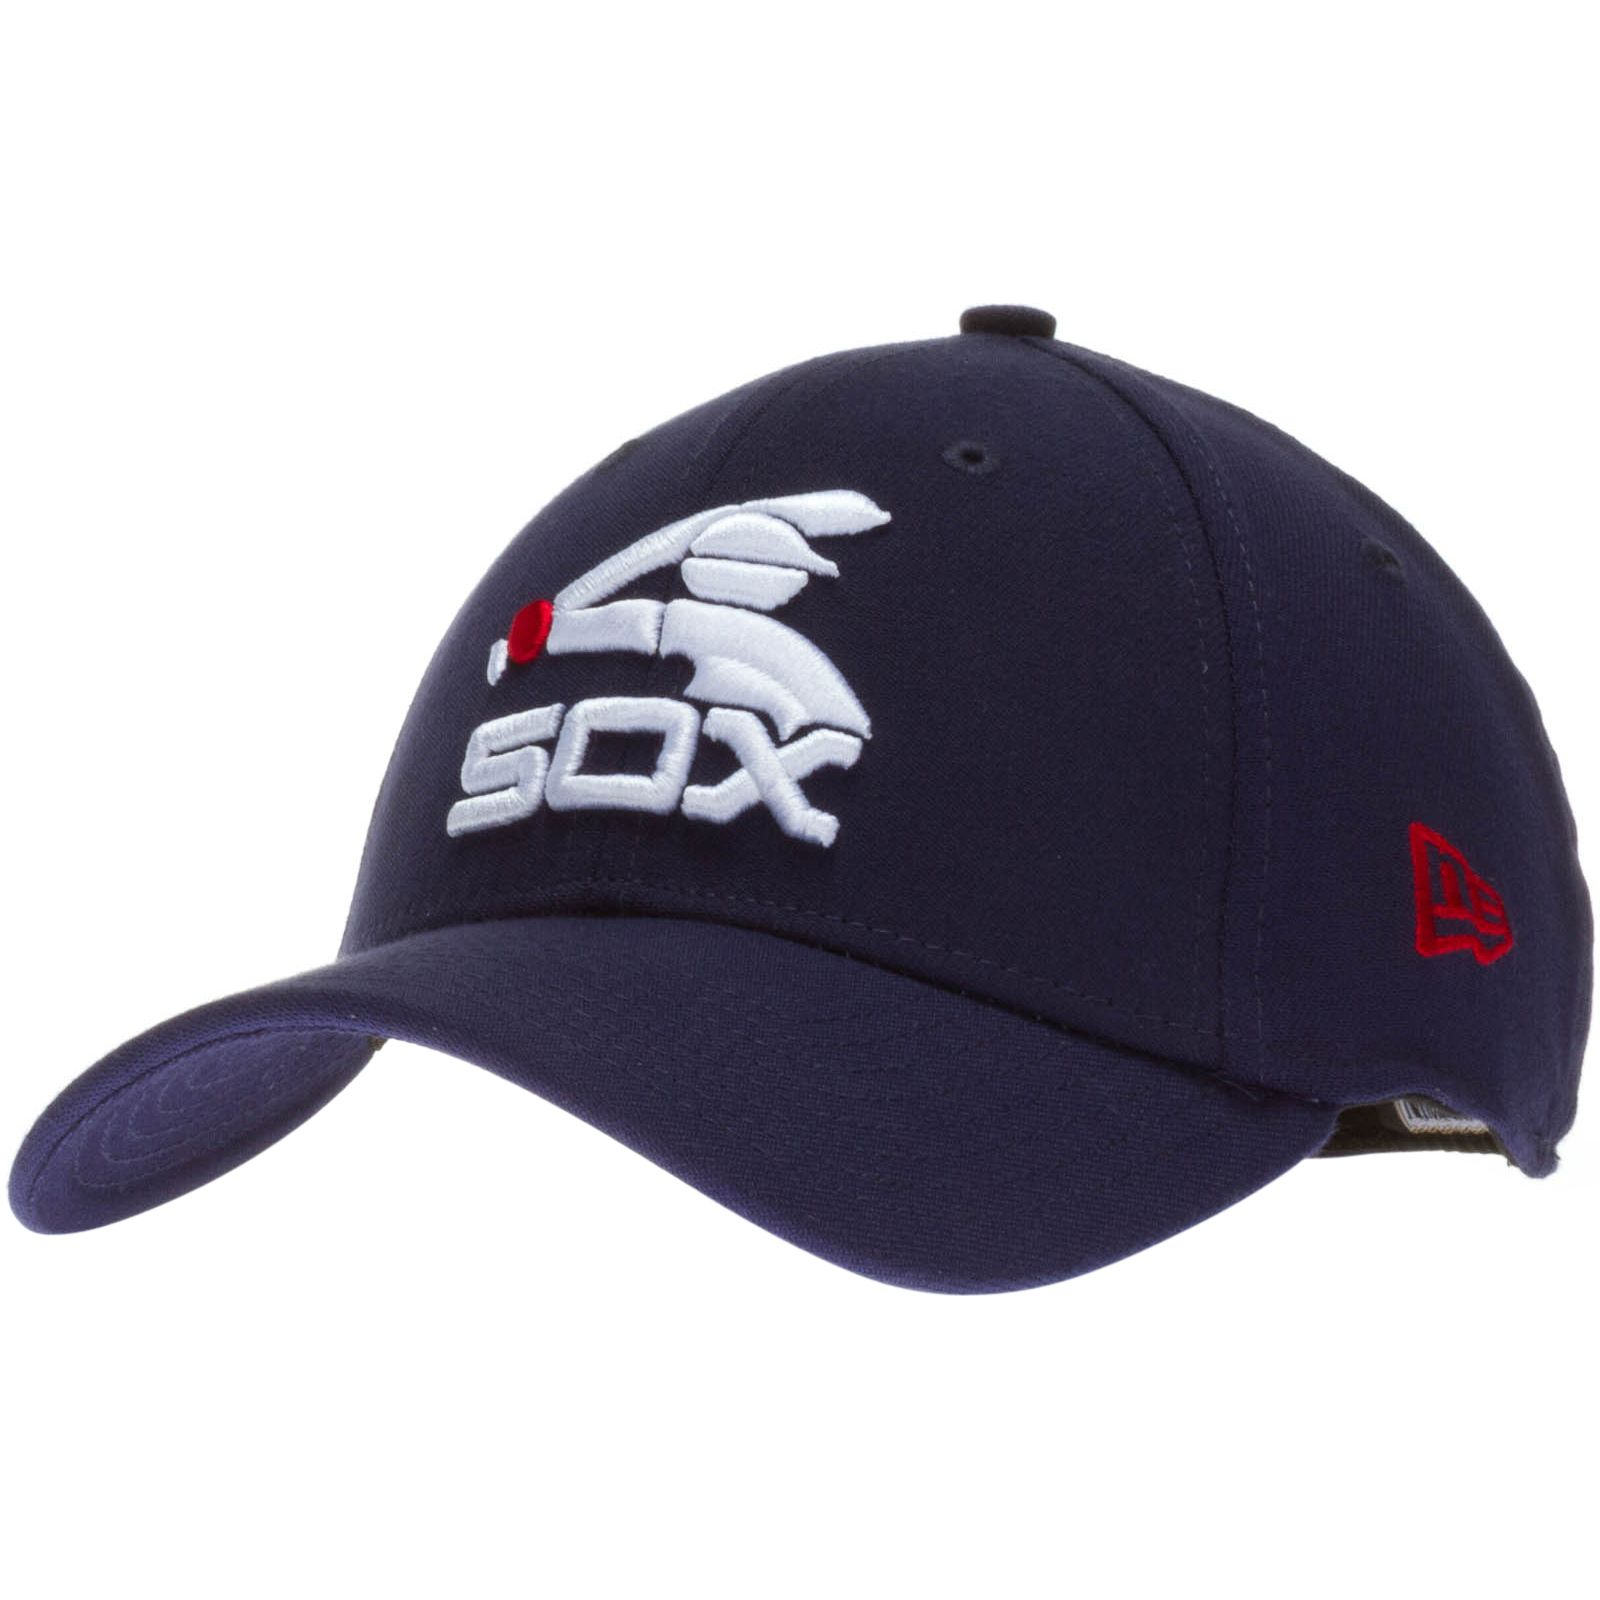 c6906f0e1 Chicago White Sox Navy Batterman Flex Fit Hat by New Era #Chicago ...